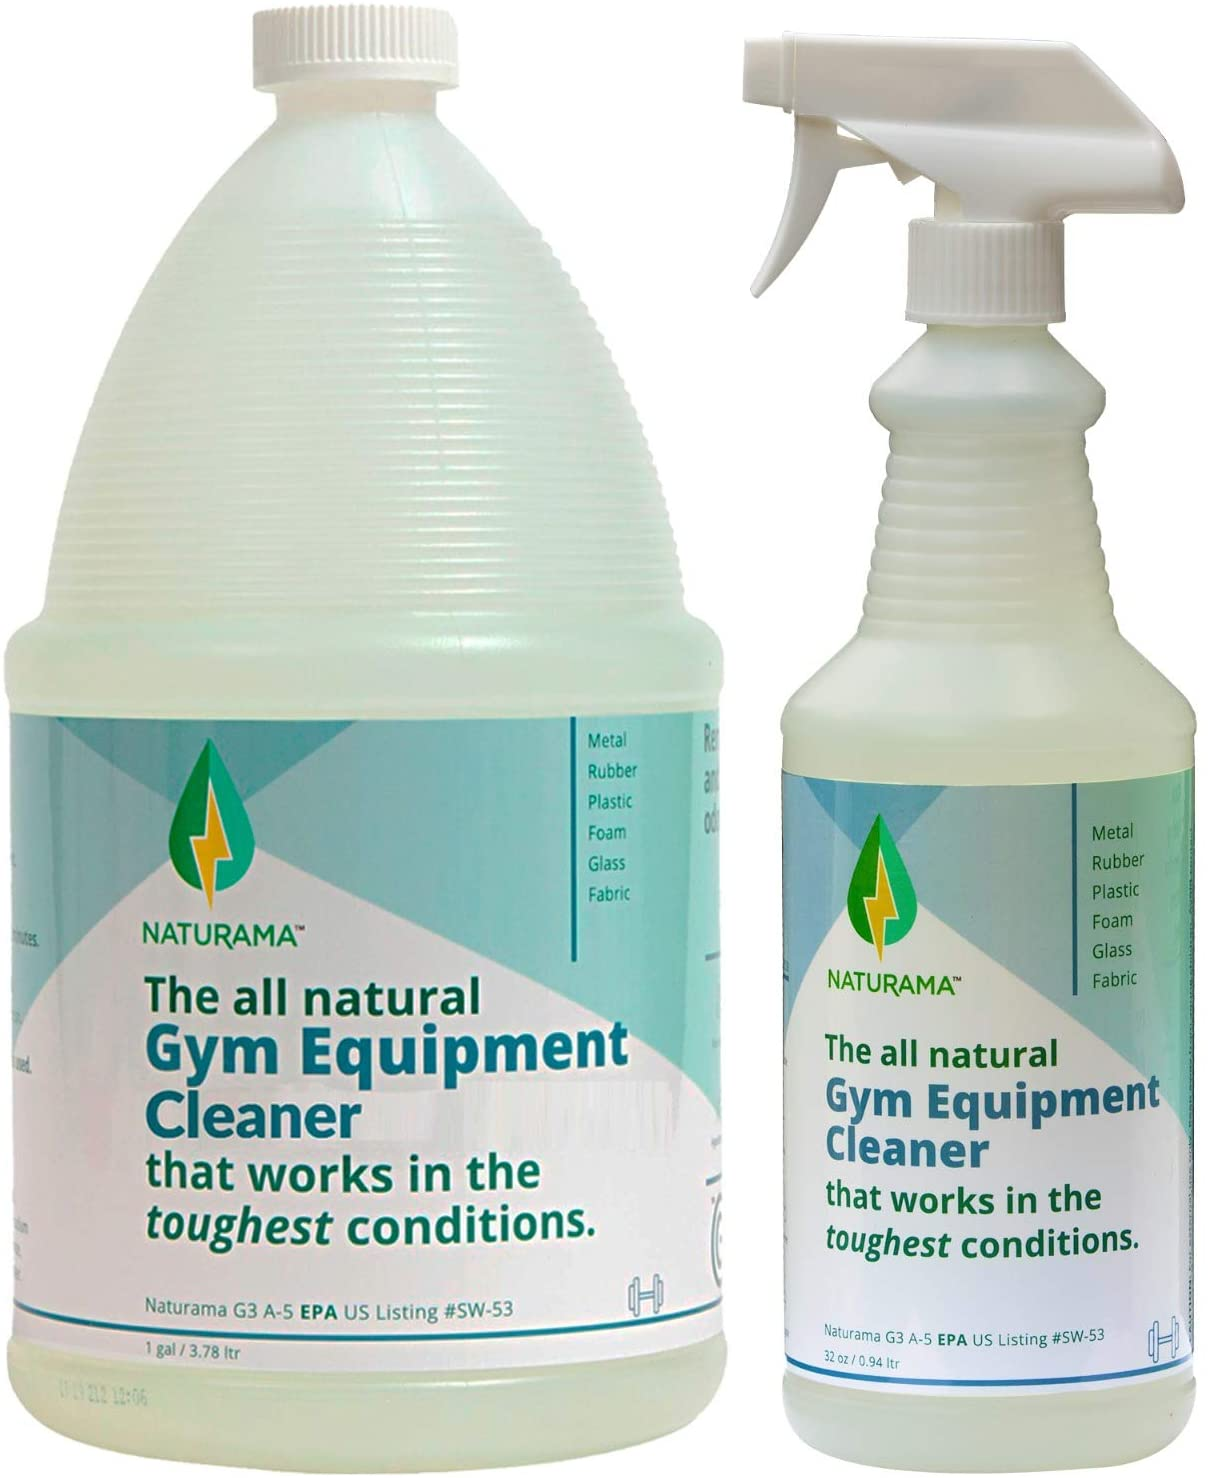 Naturama Yoga Mat Cleaner - Eco-Friendly Gym Equipment Cleaner, Works Great On Exercise Machines, Mats, Sports Gear. Cleans Sweat Without Slippery Residue. unscented and Hypoallergenic. (Refill)